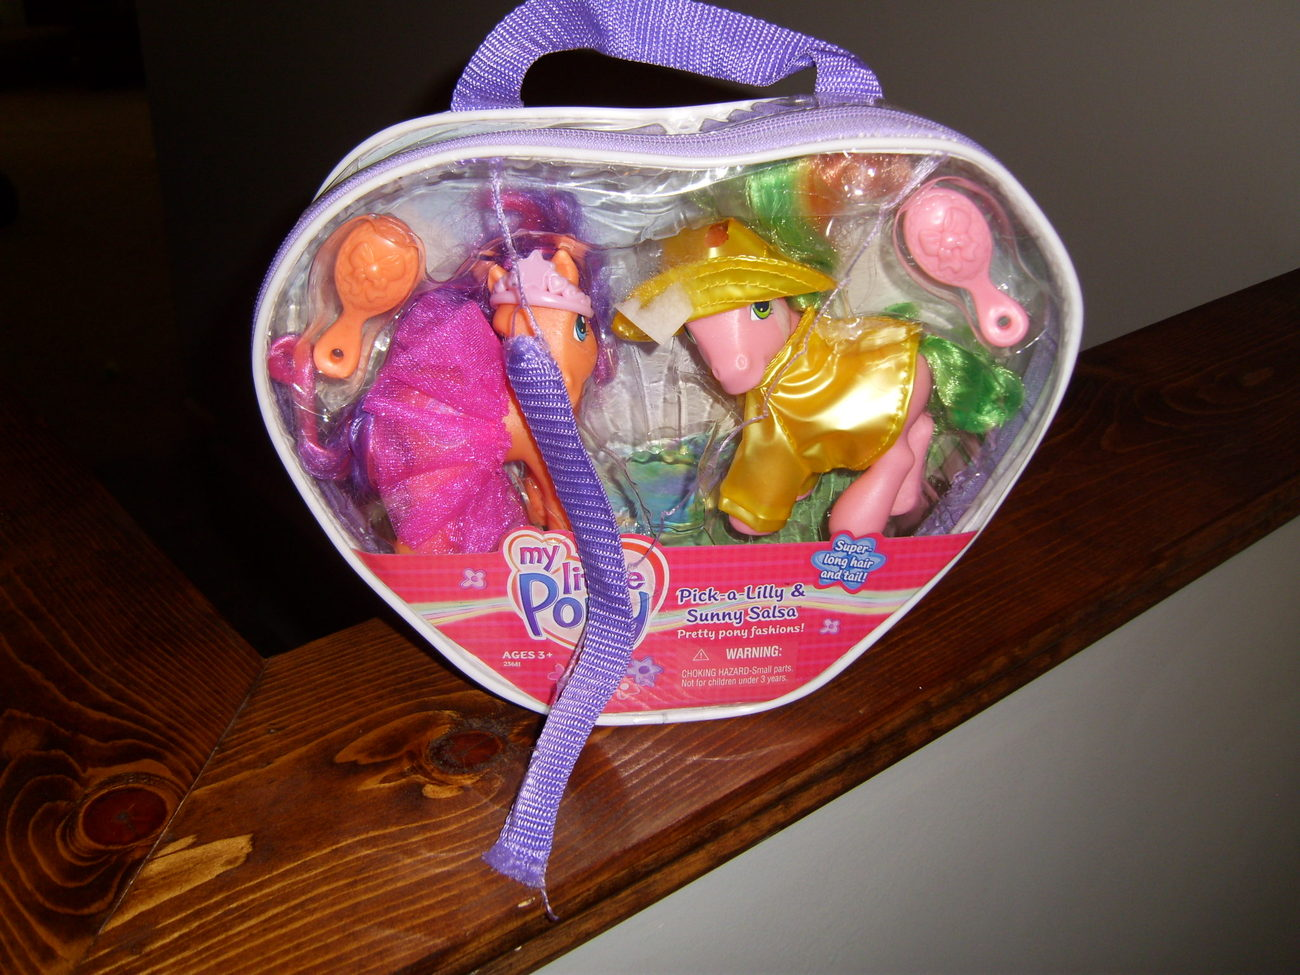 My Little Pony MIB Pick A Lilly and Sunny Salsa SLH